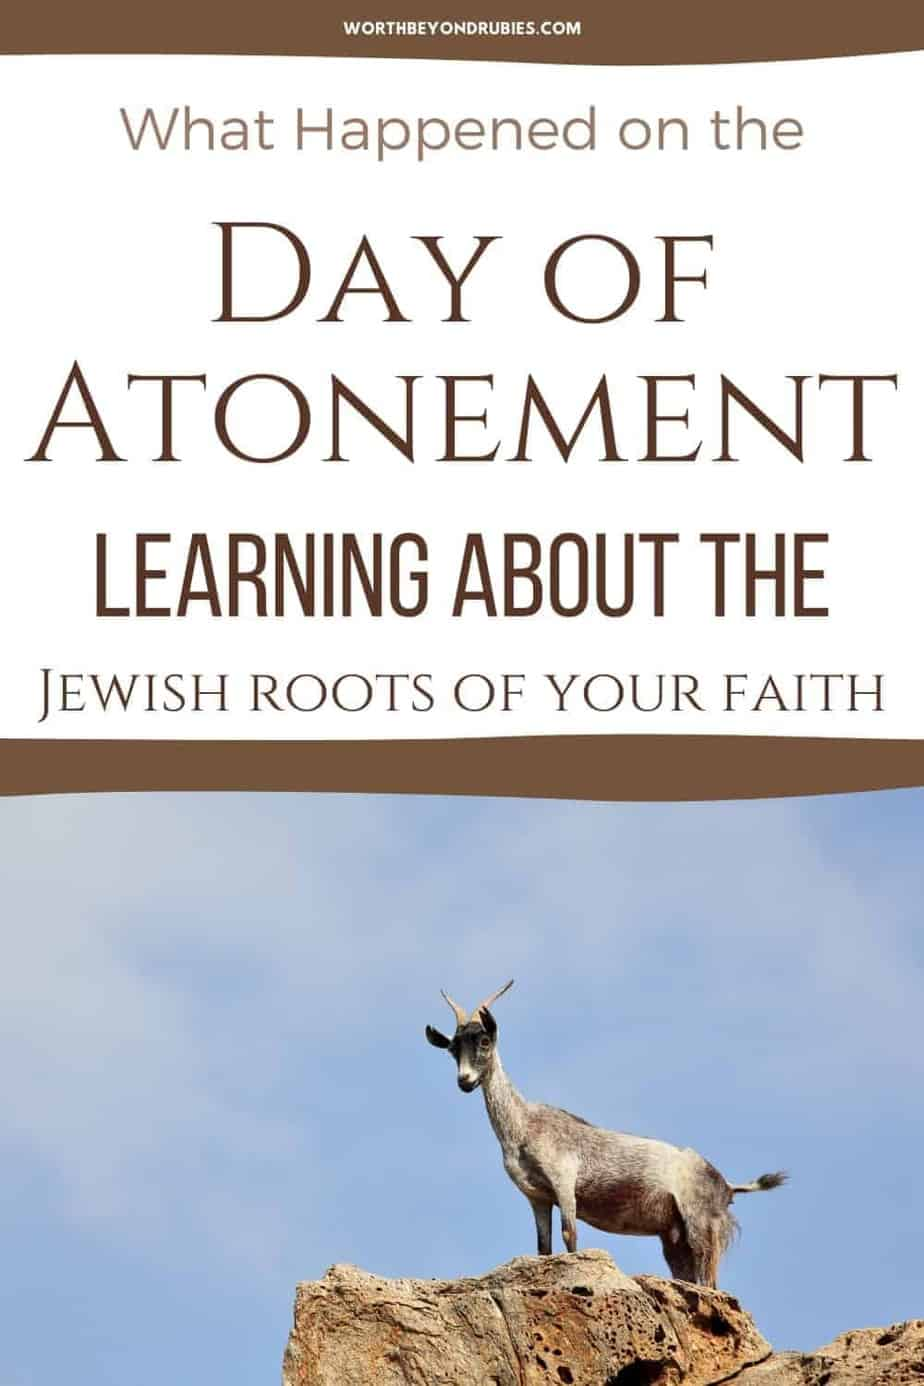 An image of a goat on a rock against a blue sky and text that says What Happened on the Day of Atonement? Learn the Jewish Roots of Your Faith